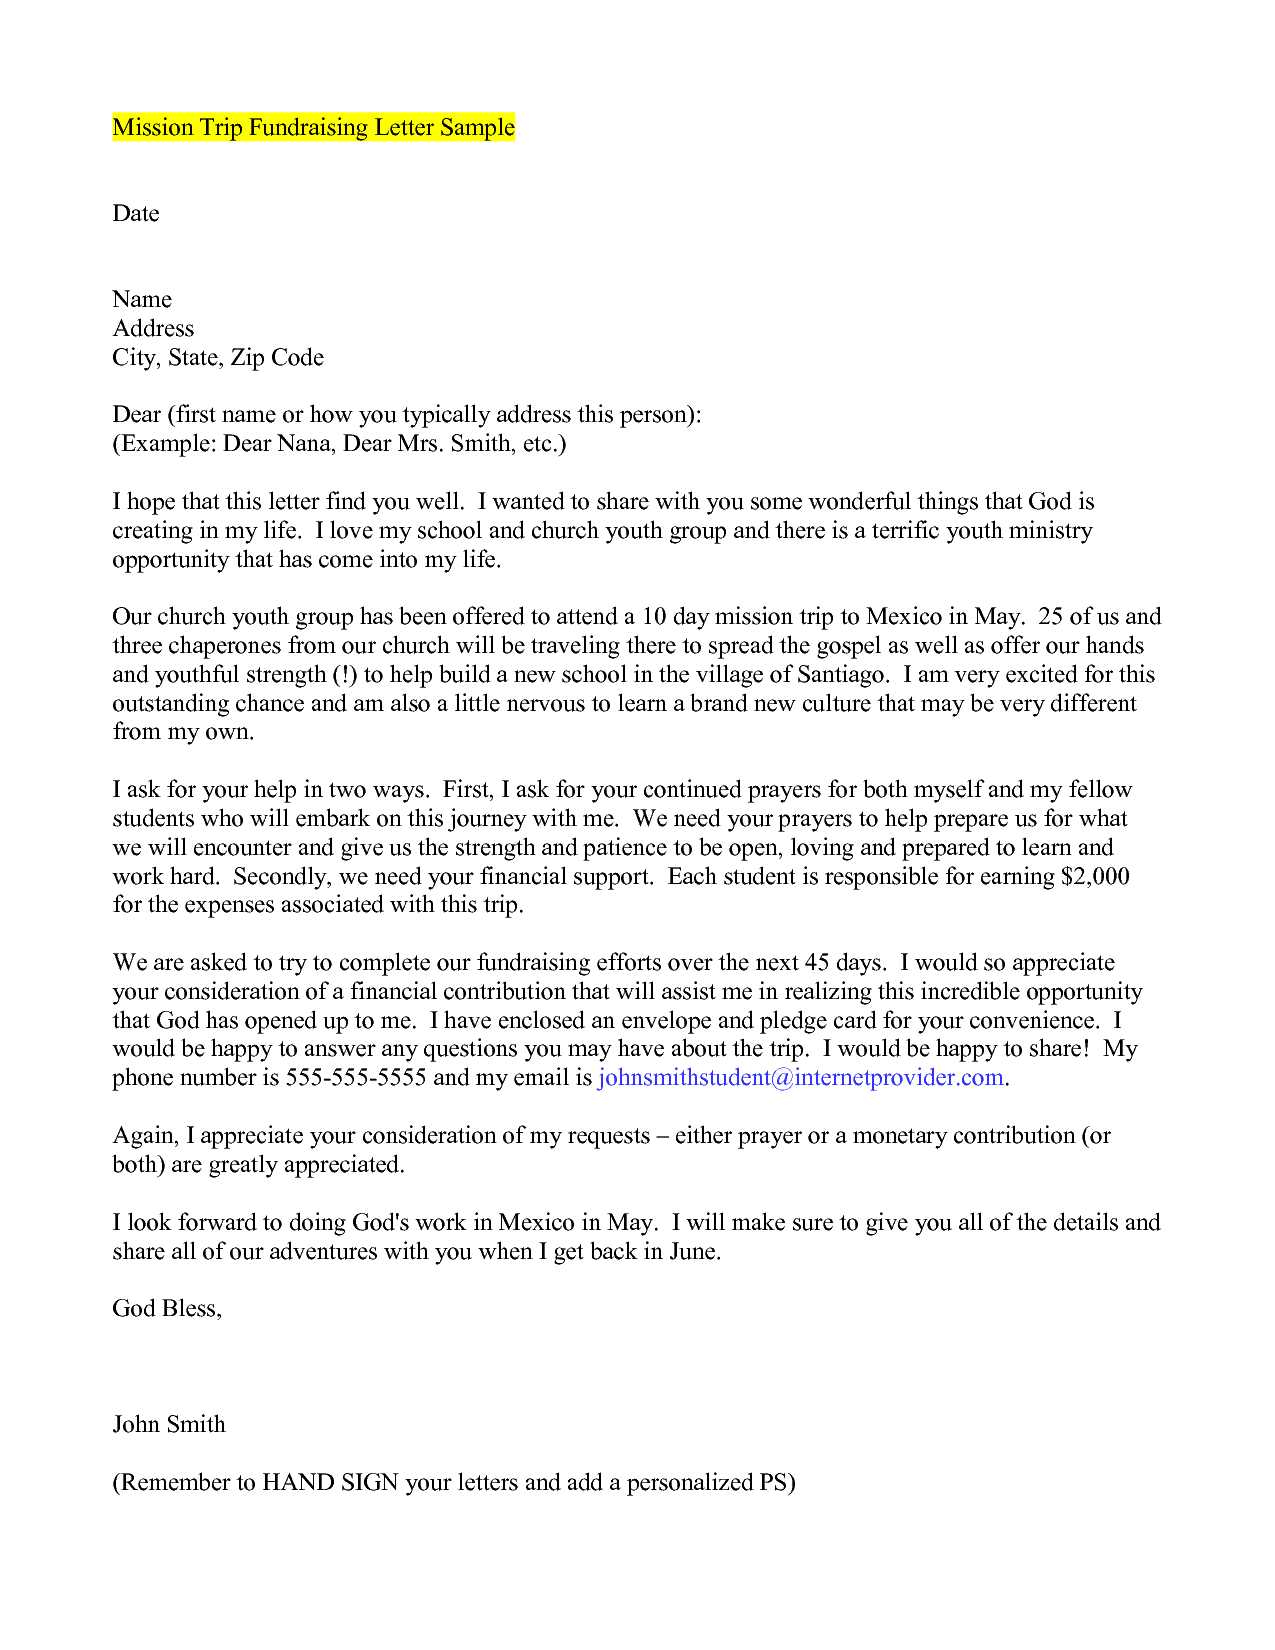 Missionary Prayer Letter Template - Early Childhood Philosophy Statement Examples as Well as Mission